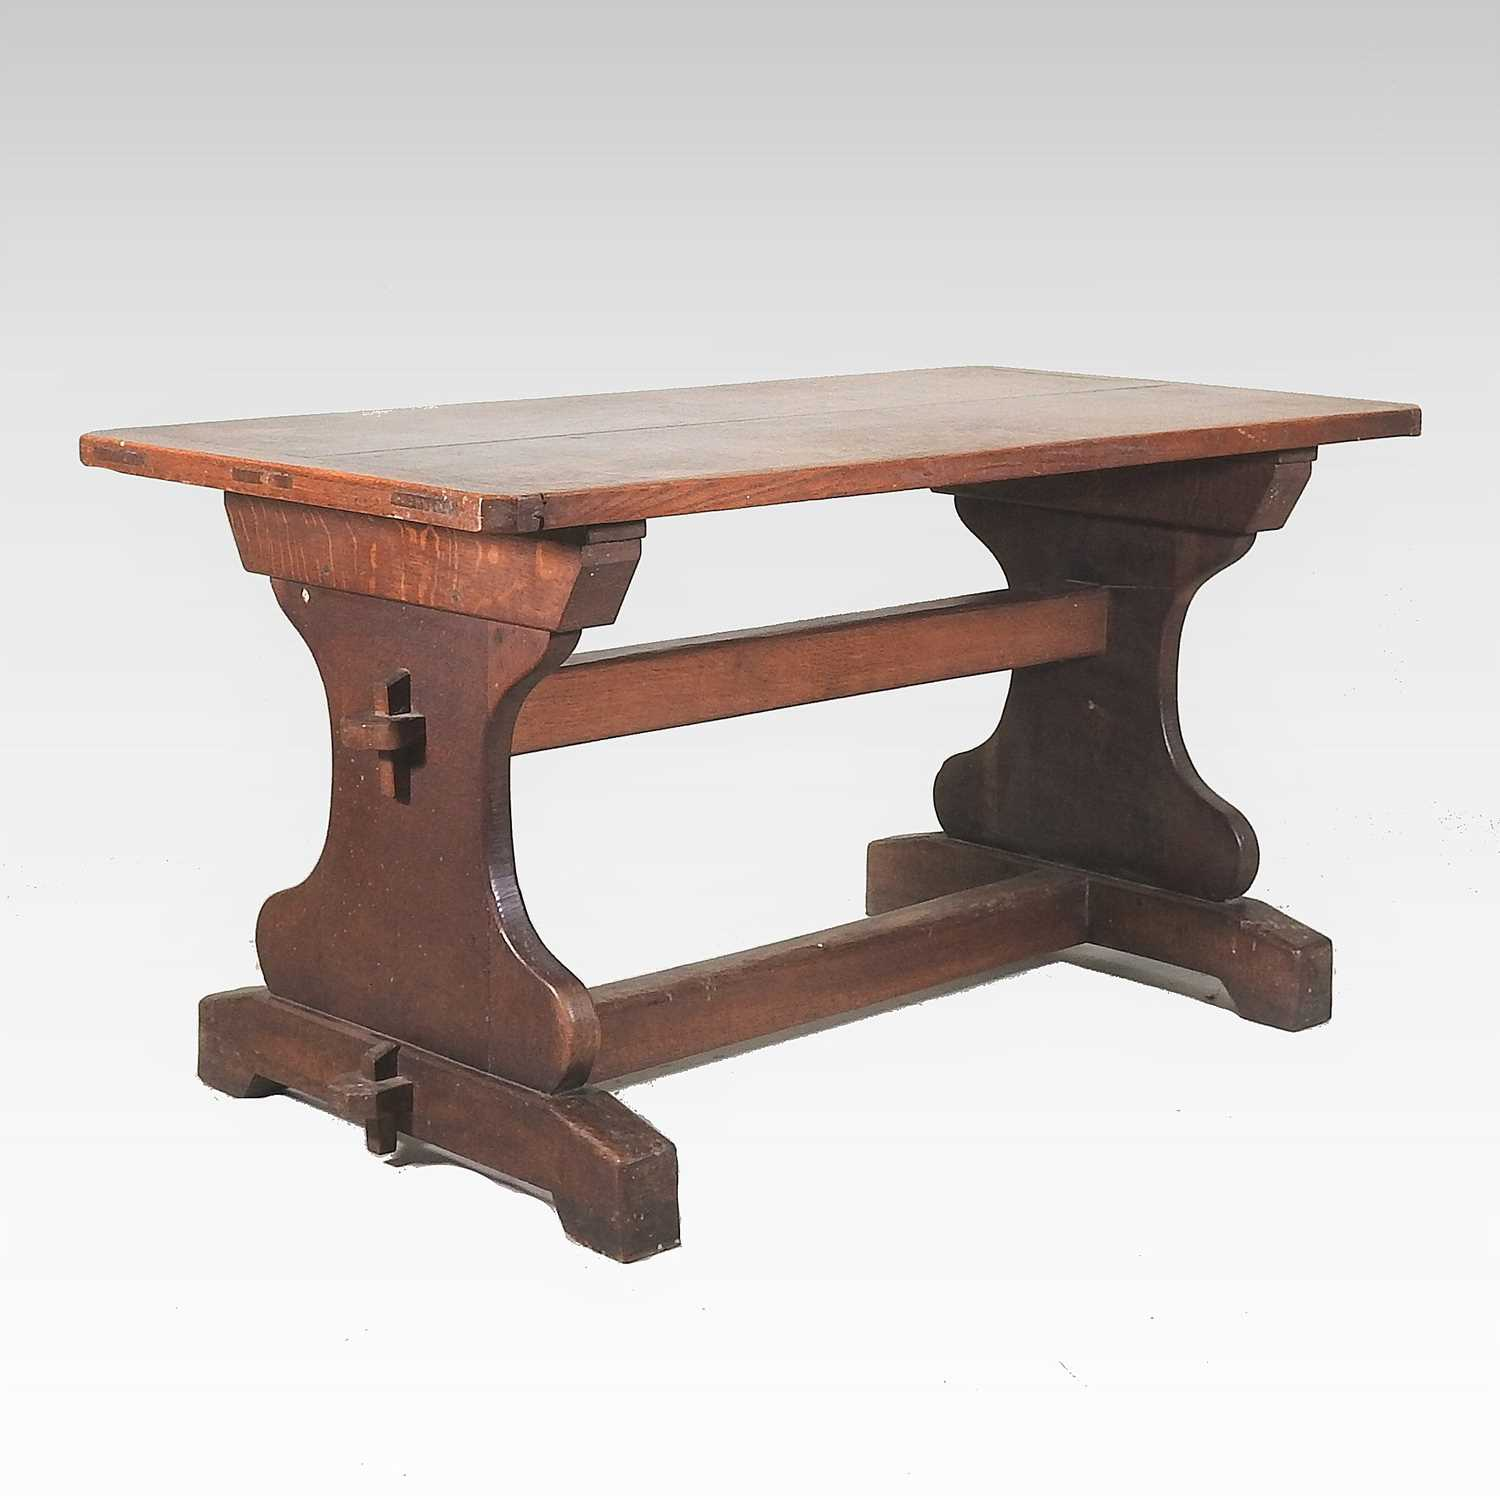 A late 19th century oak refectory table